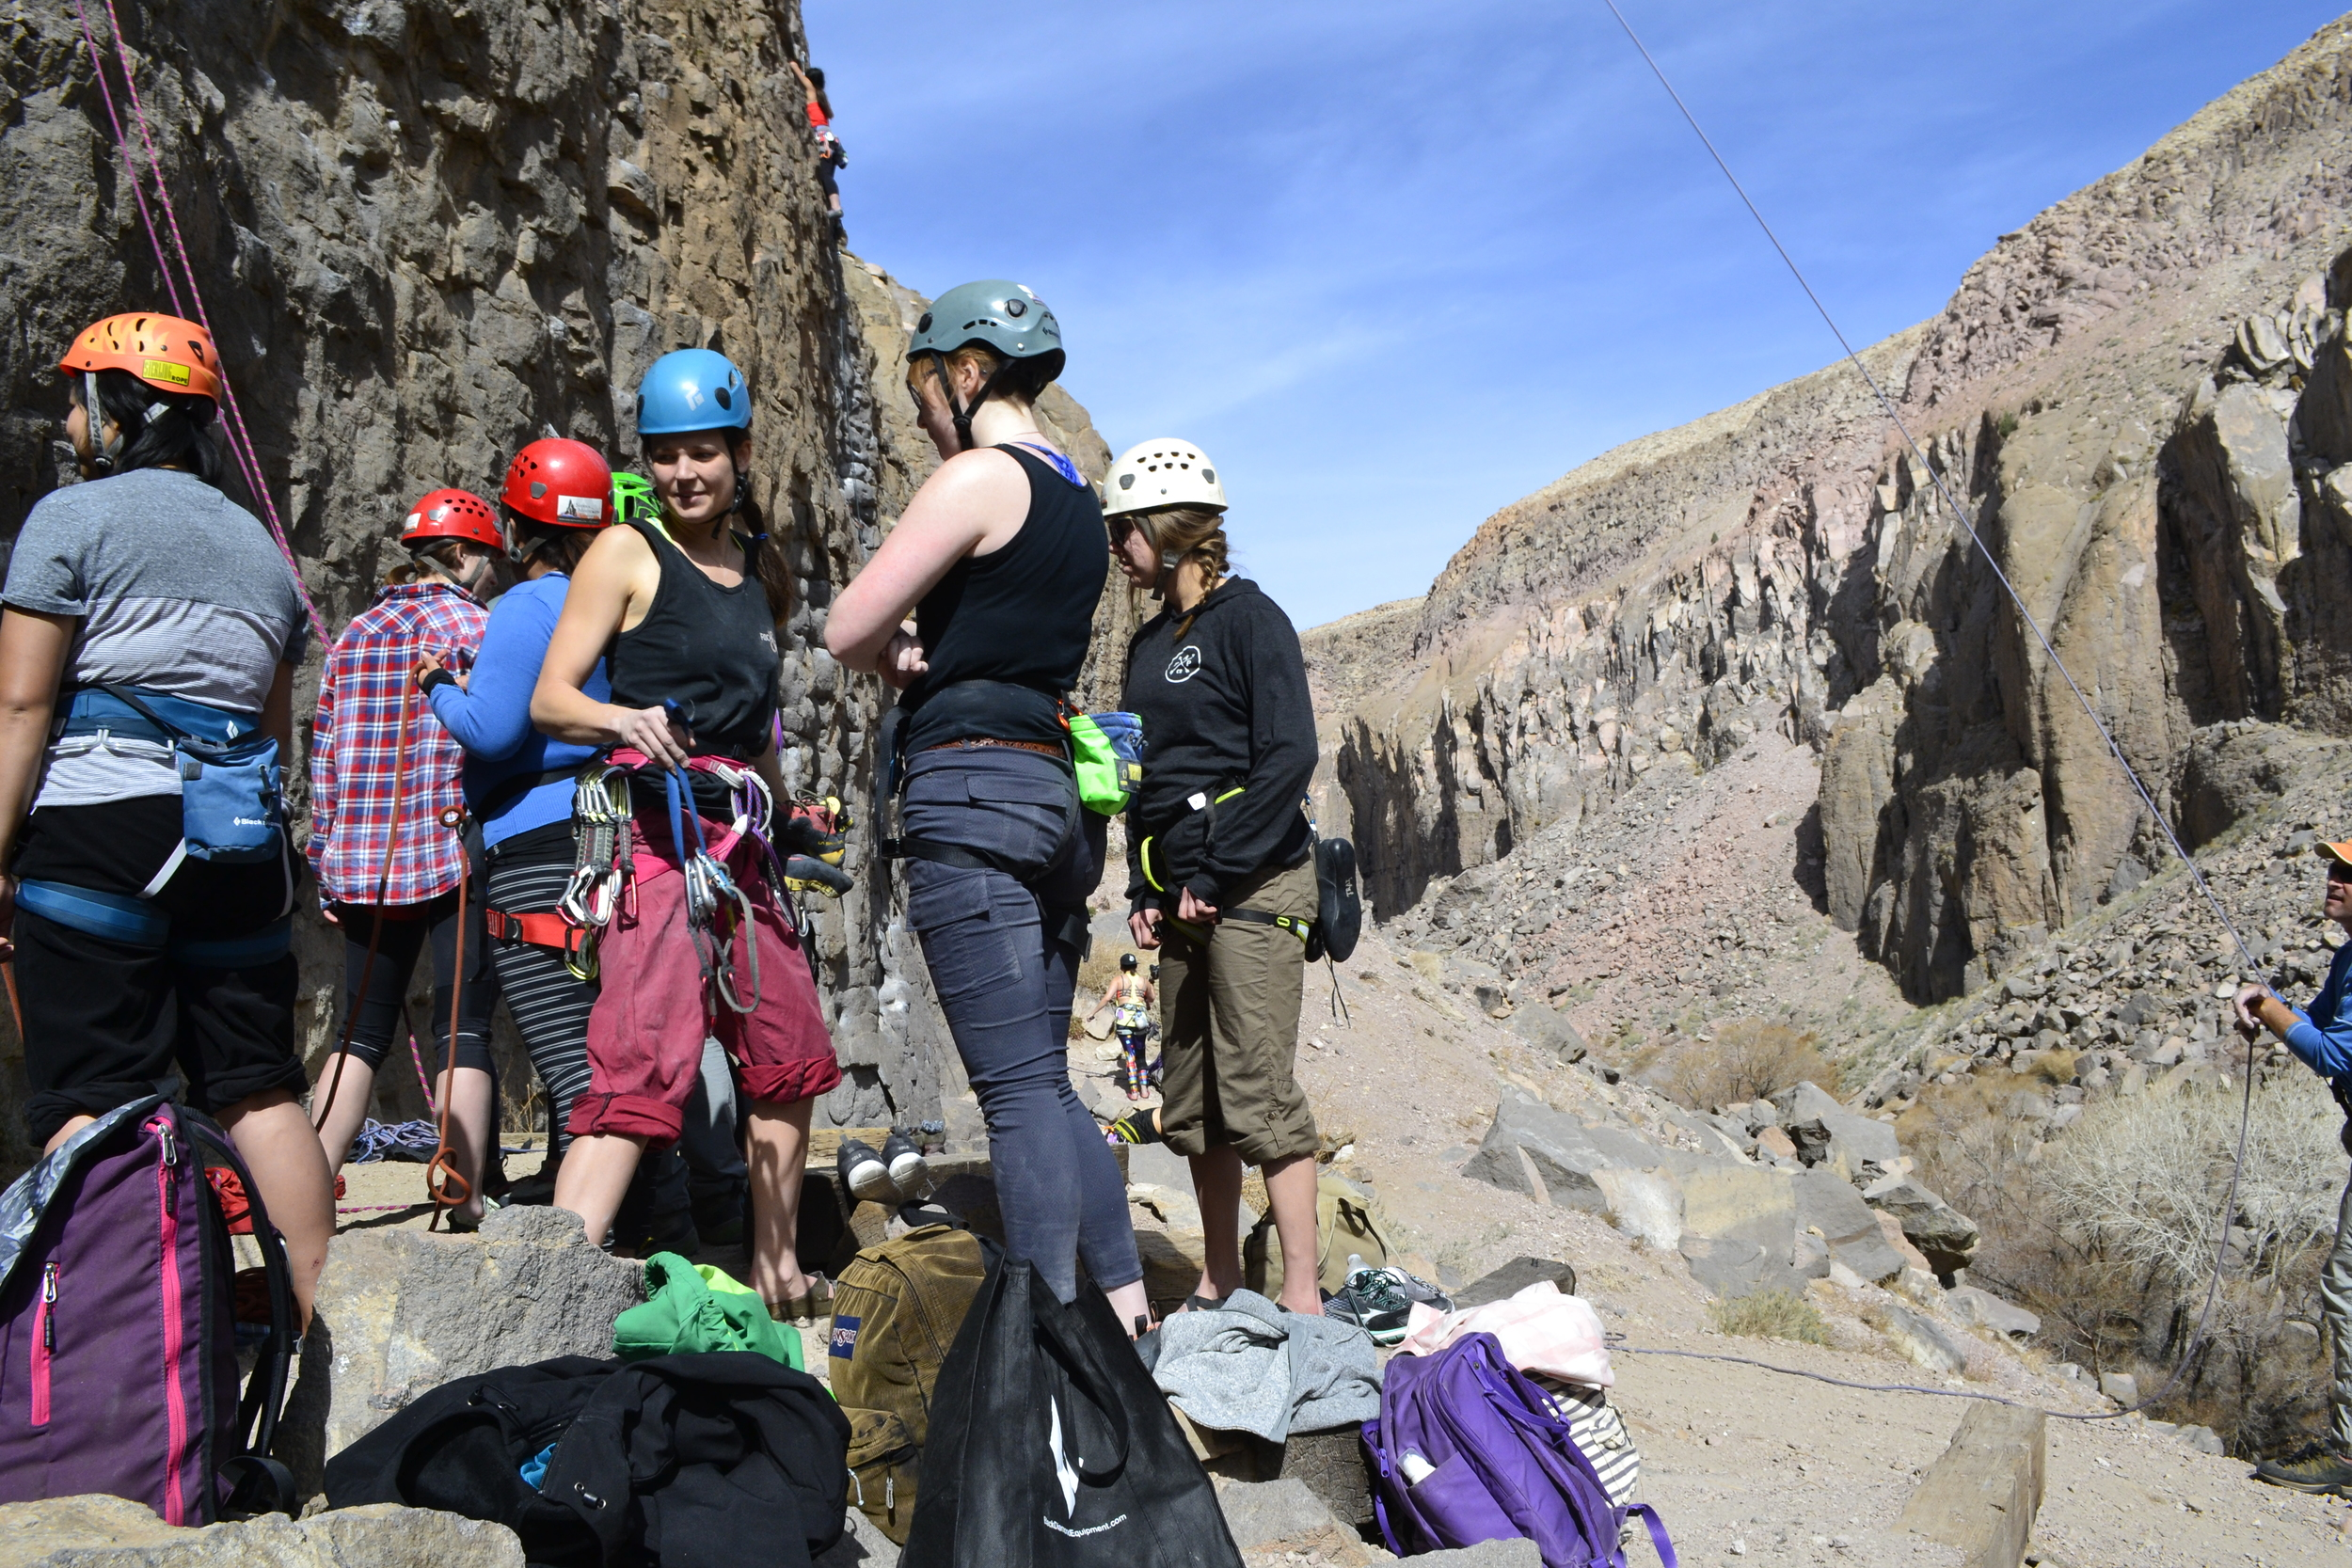 Cliffs coach Taylor Nystrom leads a clinic at the Owen's River Gorge, just outside of Bishop